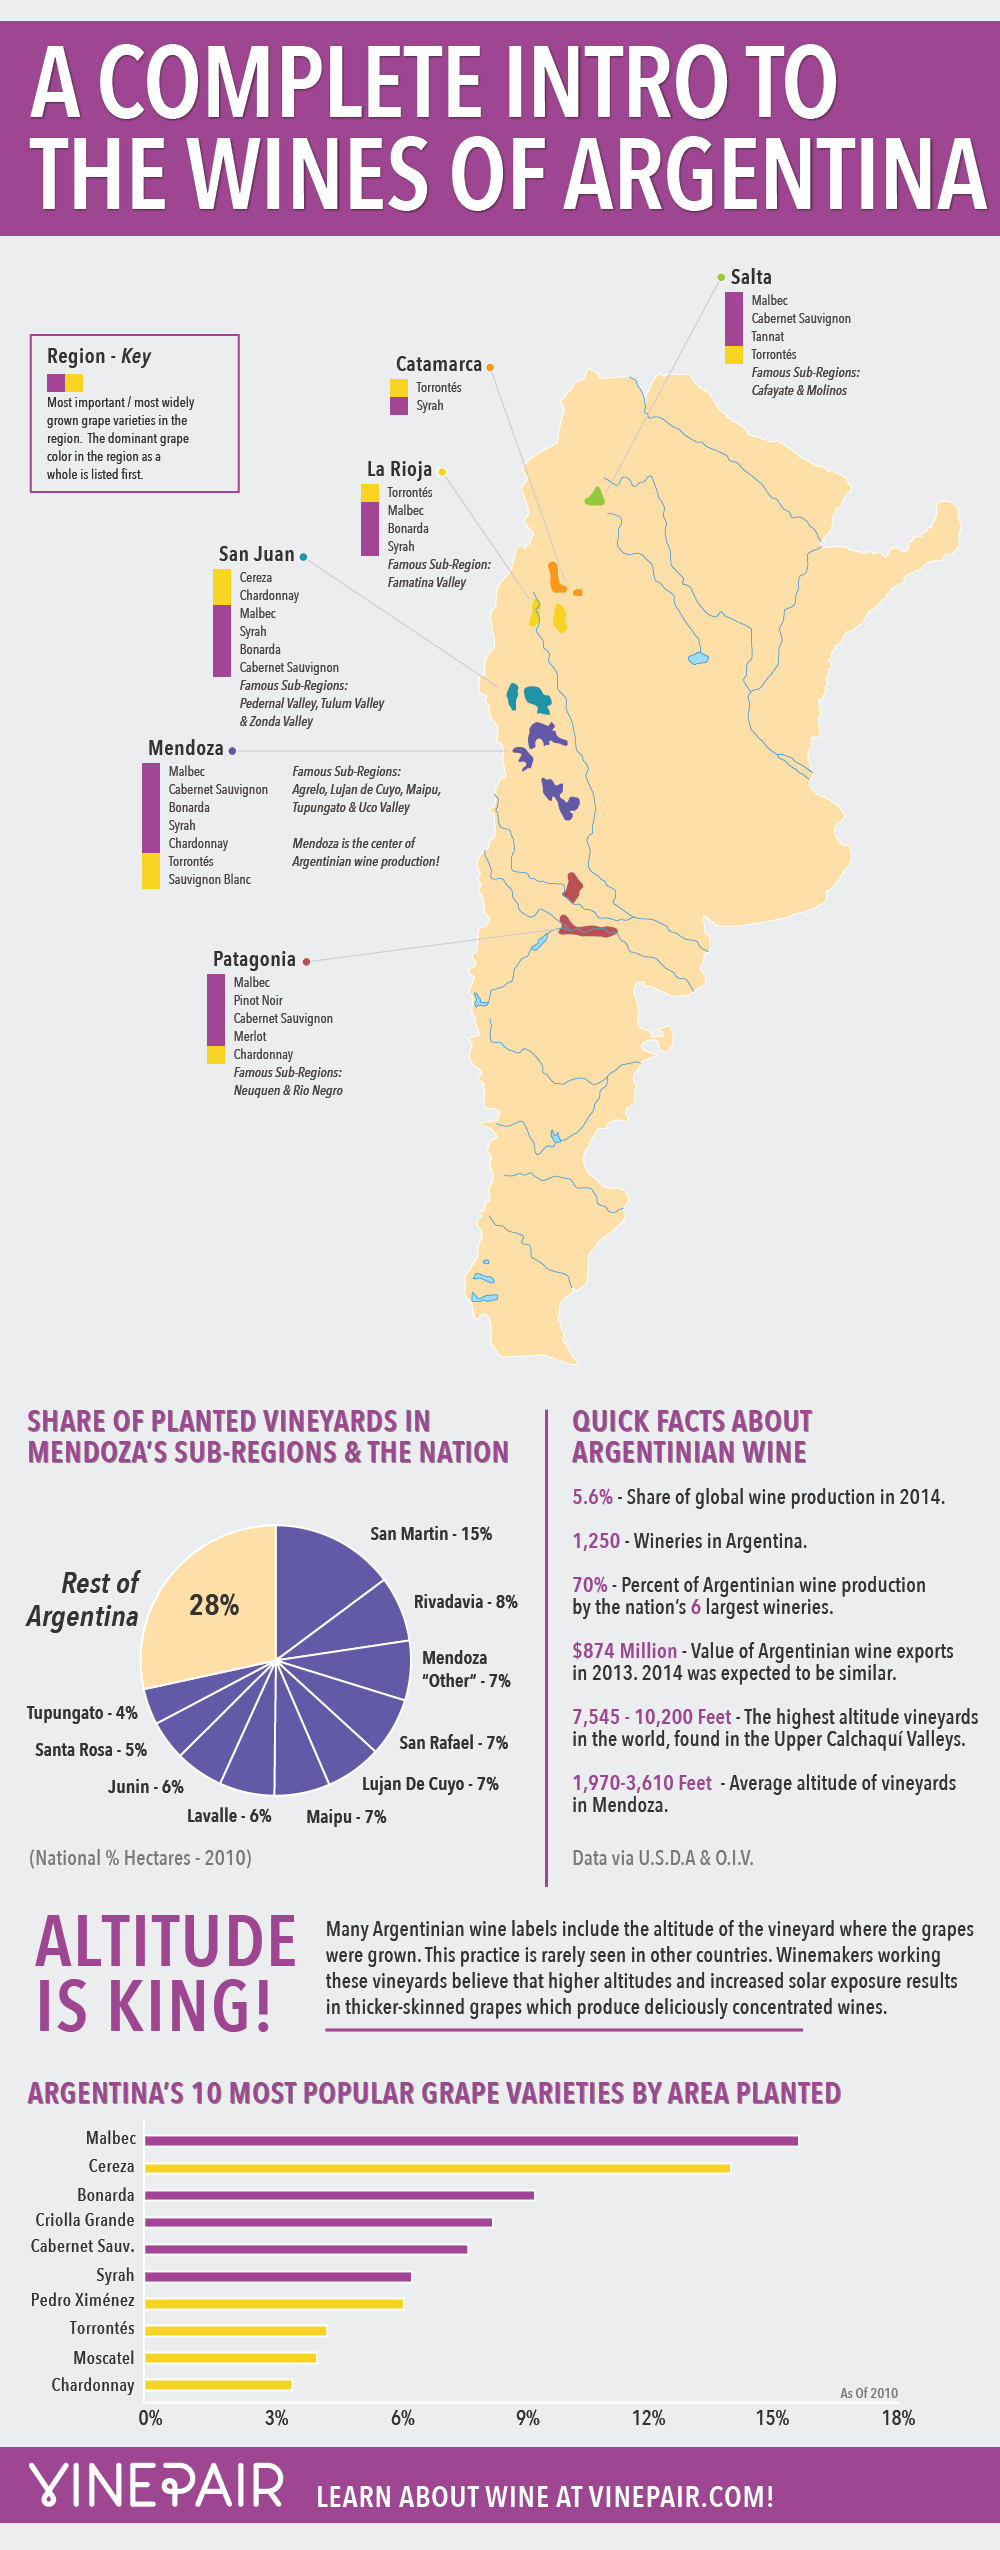 Article source: Vine Pair - Joshua Malin  www.vinepair.com  http://vinepair.com/wine-blog/intro-wines-of-argentina-map-infographic/